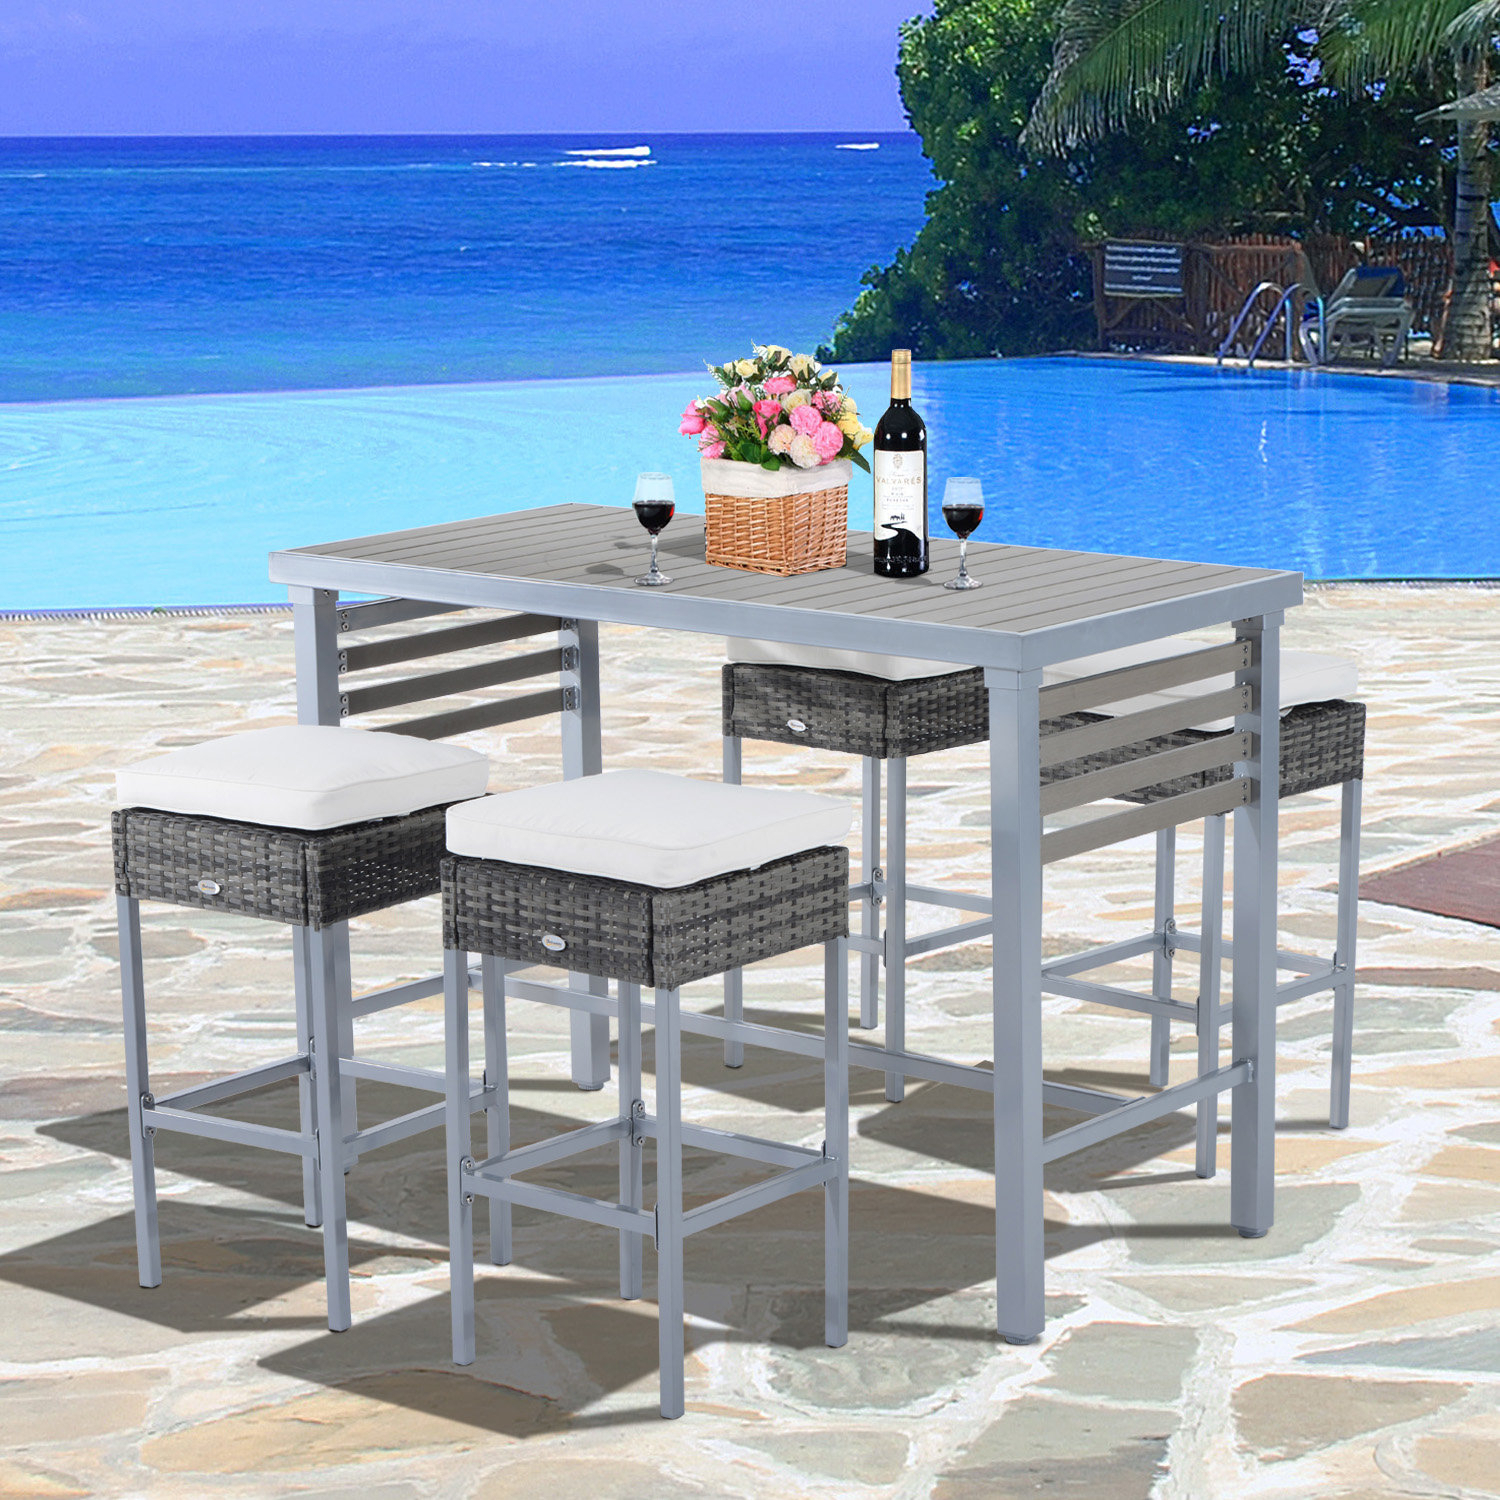 Ebern Designs Rosa 5 Piece Patio Bar Height Dining Set With Cushions Throughout Well Known Sheetz 3 Piece Counter Height Dining Sets (View 20 of 20)